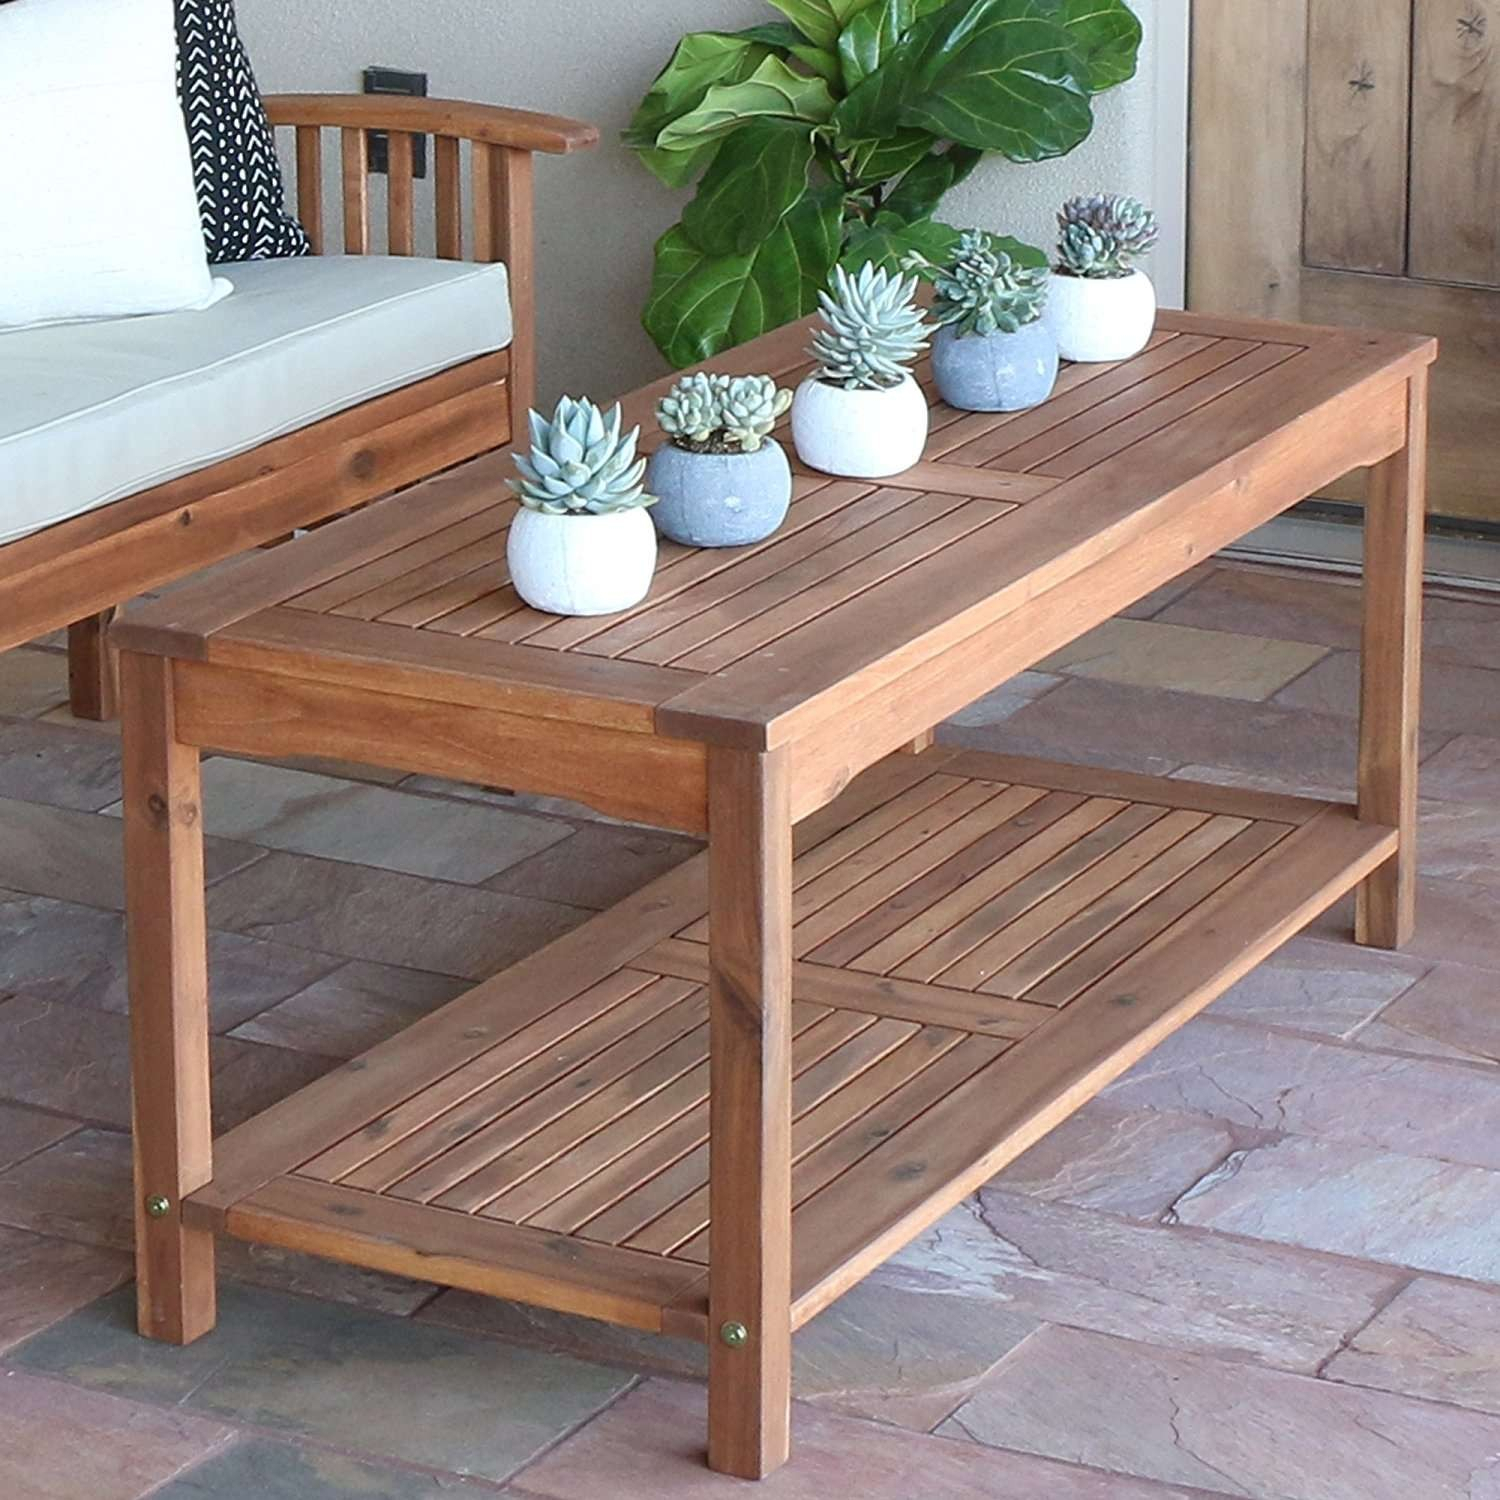 9 Crate And Barrel Concrete Coffee Table Gallery | Coffee Tables Ideas For Parsons Walnut Top & Dark Steel Base 48x16 Console Tables (View 9 of 30)